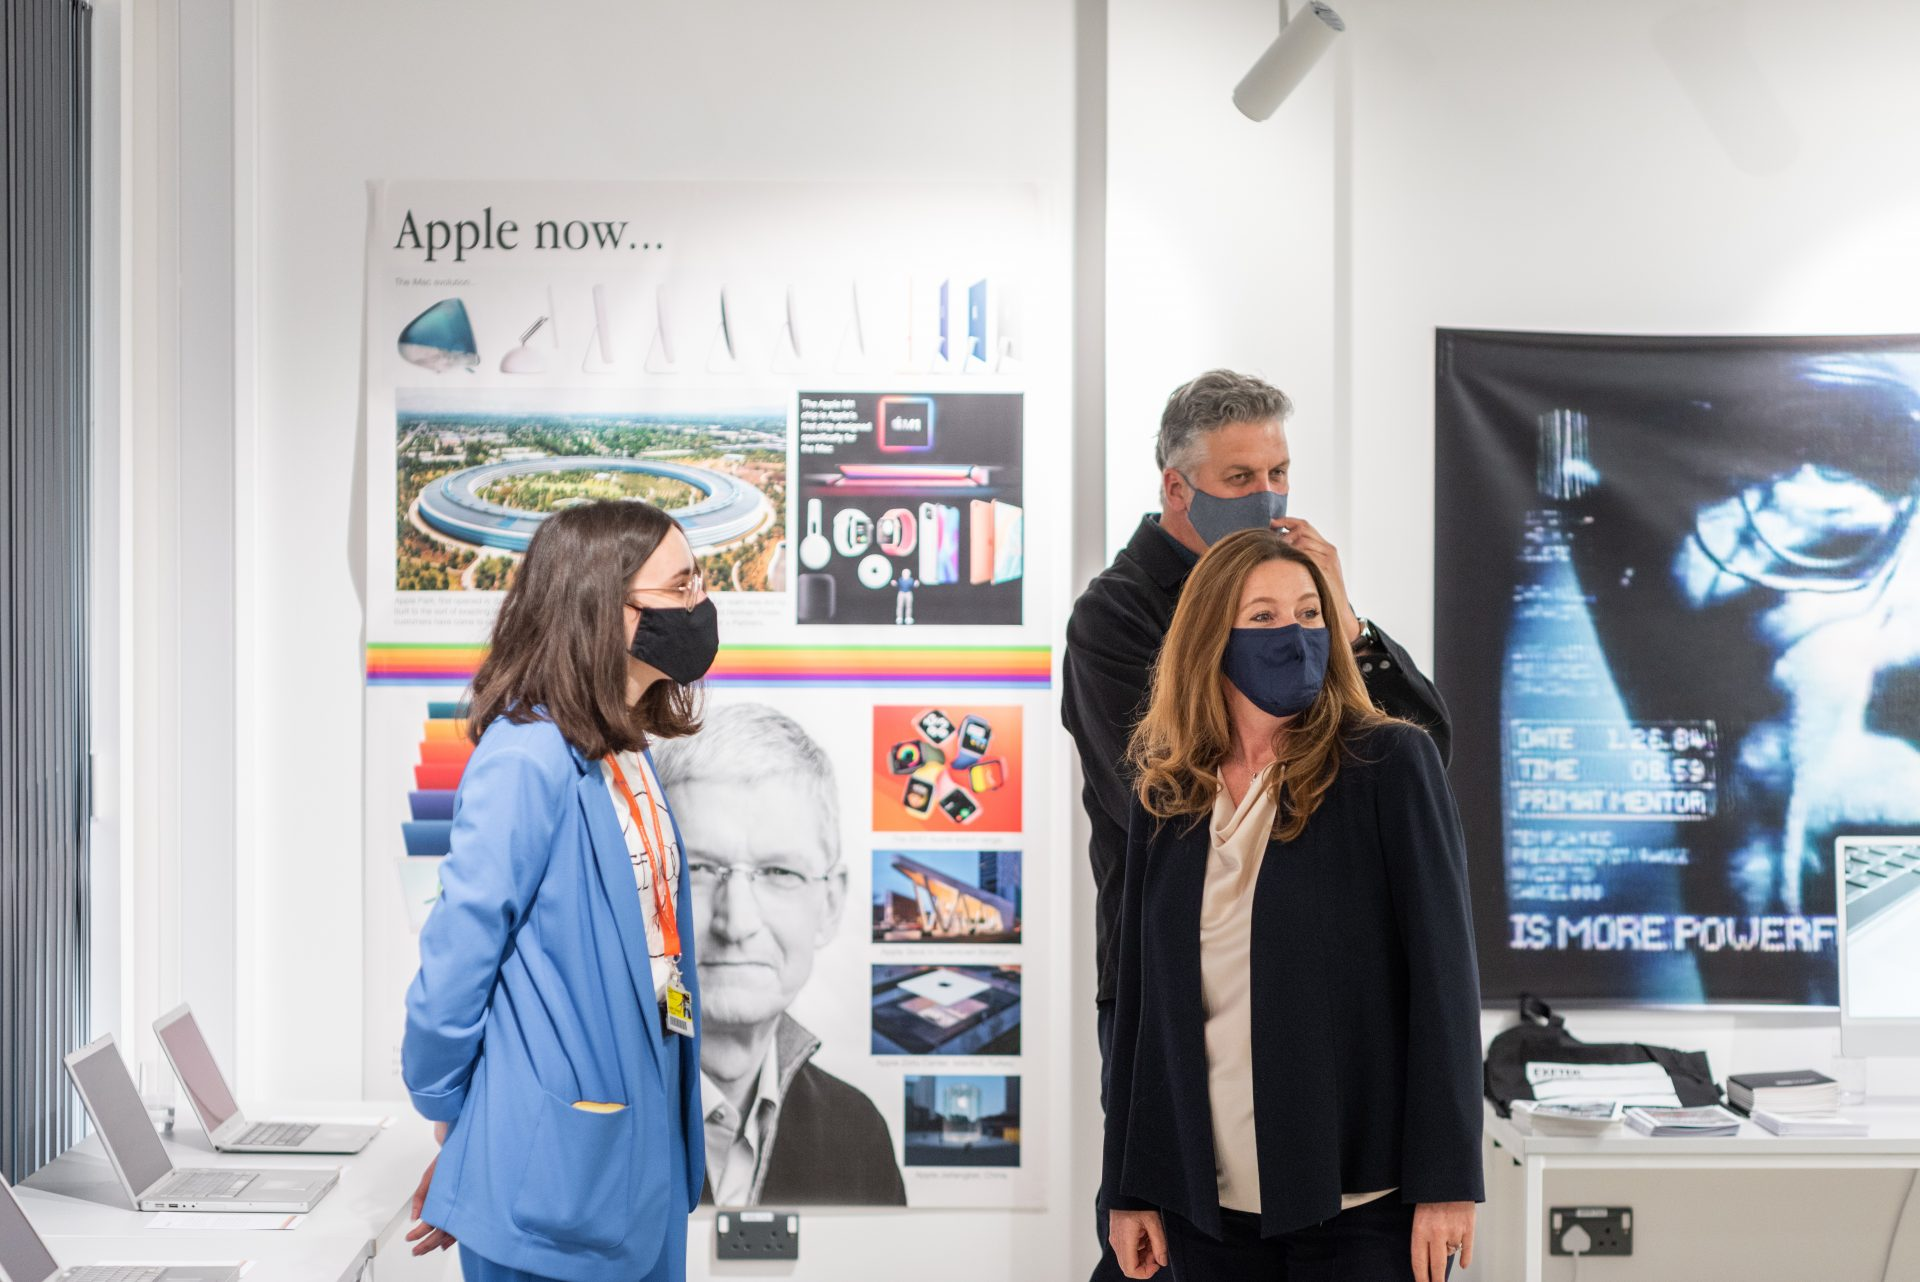 Exeter College student gives the Minister for Apprenticeships & Skills, Gillian Keegan, a tour of the Mac Museum at the official opening of the Exeter College Institute of Technology Digital and Data Centre.